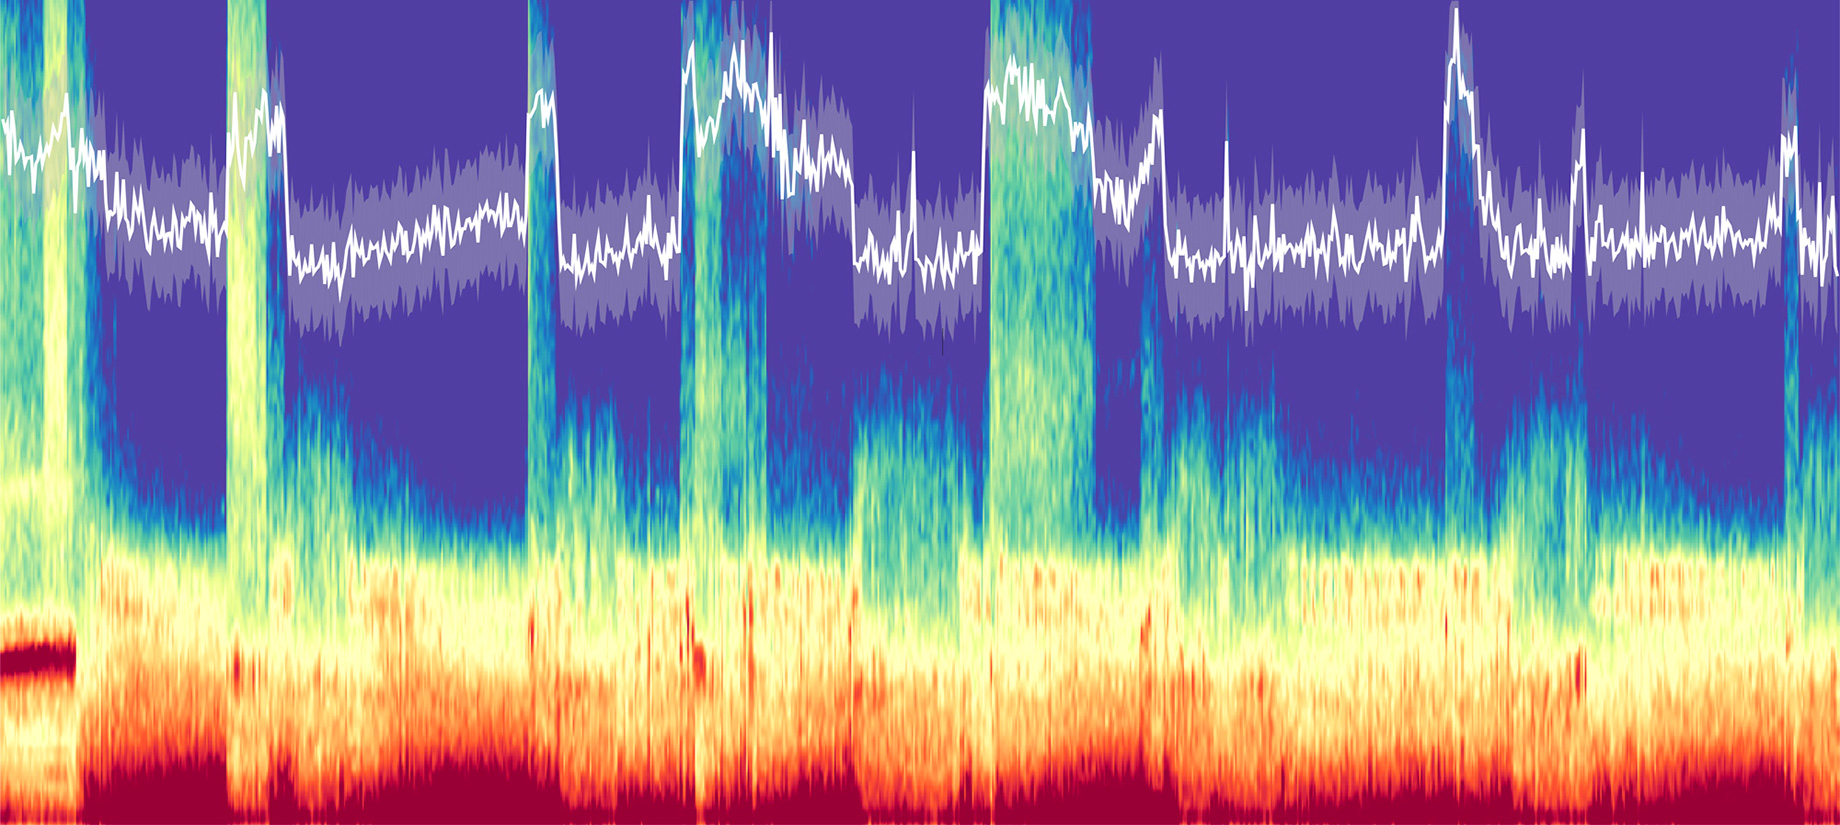 Spectrogram of brain activity collected over a full night of sleep.